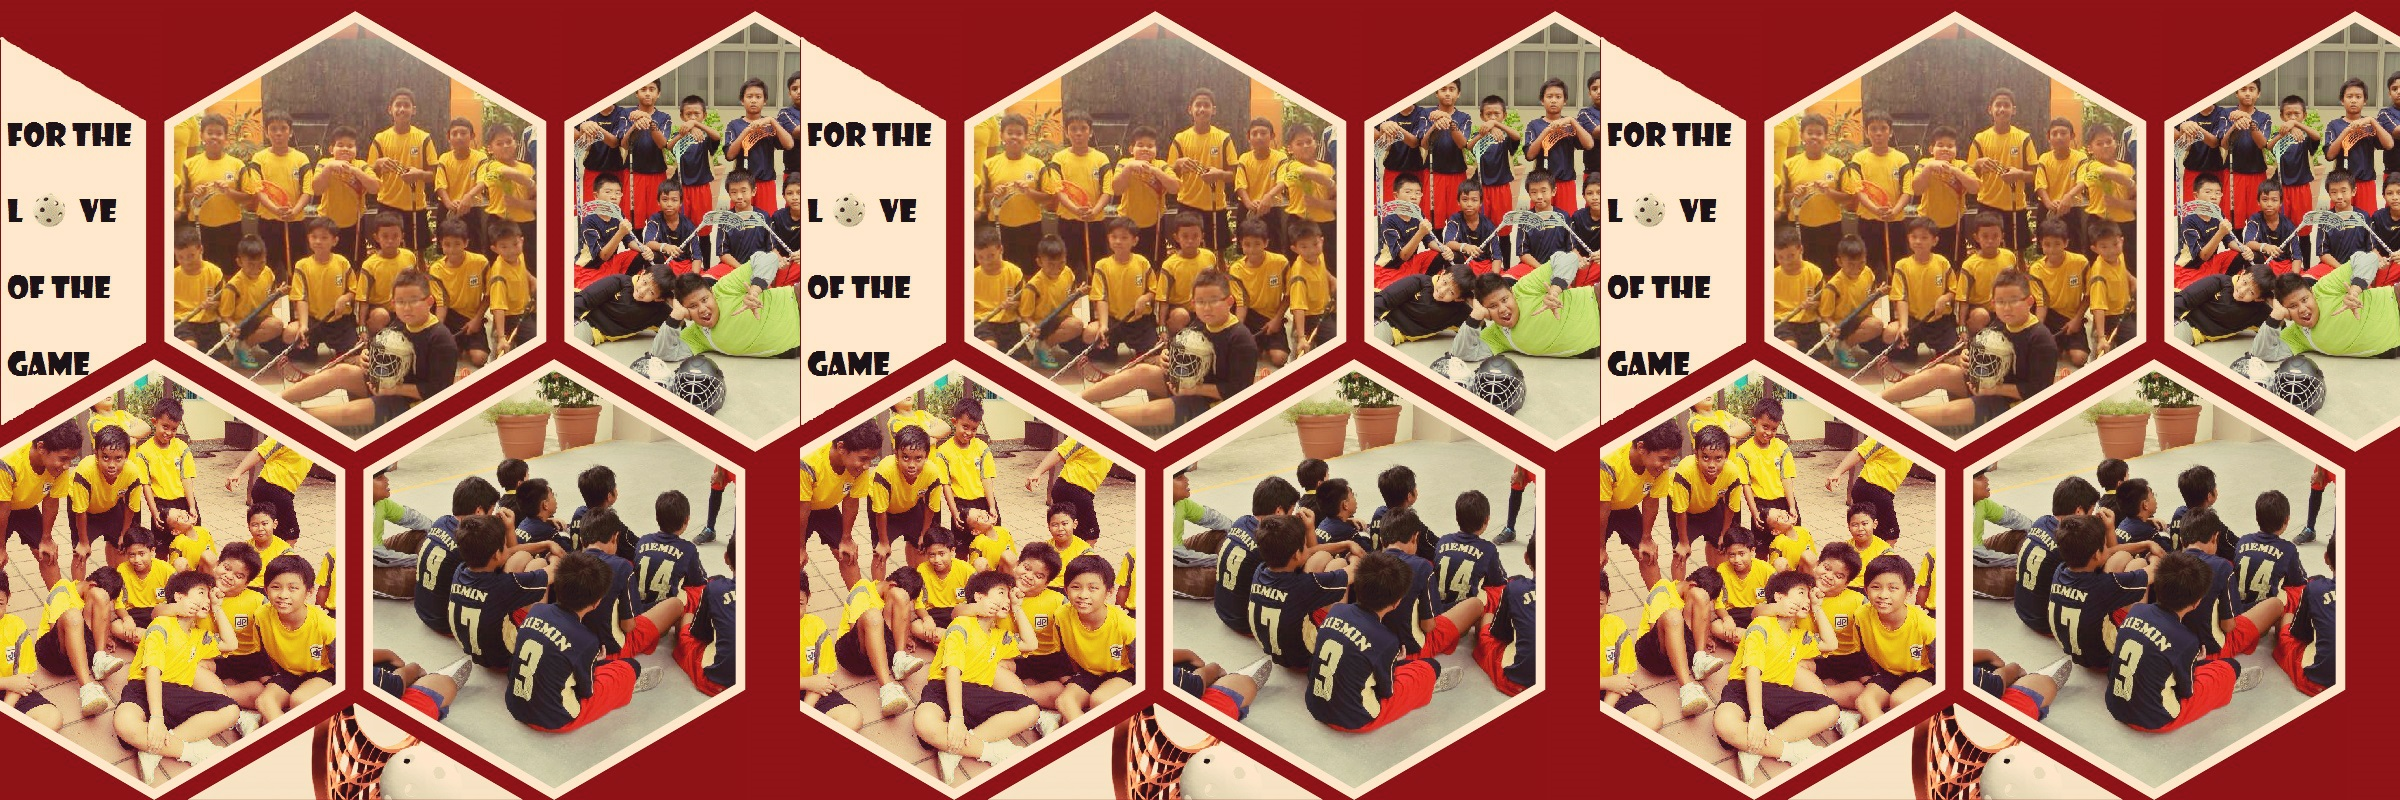 Floorball CCA Photo.jpg